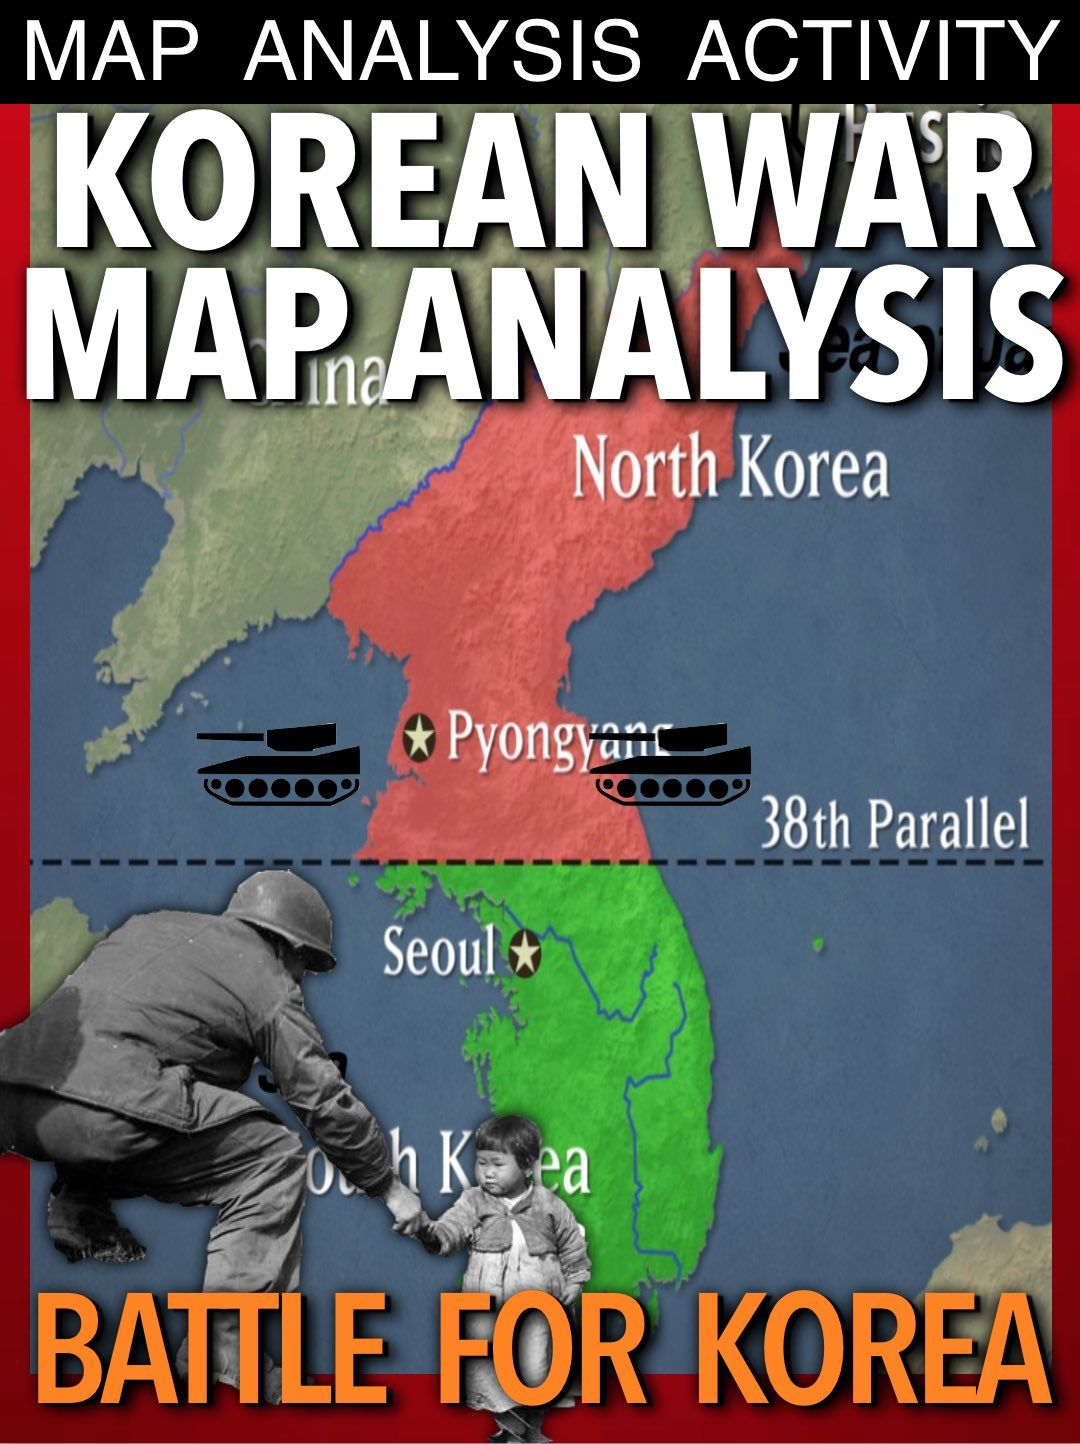 Korean war map exercise cold war us history tpt store korean war map exercise guides students through the divisions that formed immediately after world war ii during the cold war students first locate several gumiabroncs Image collections